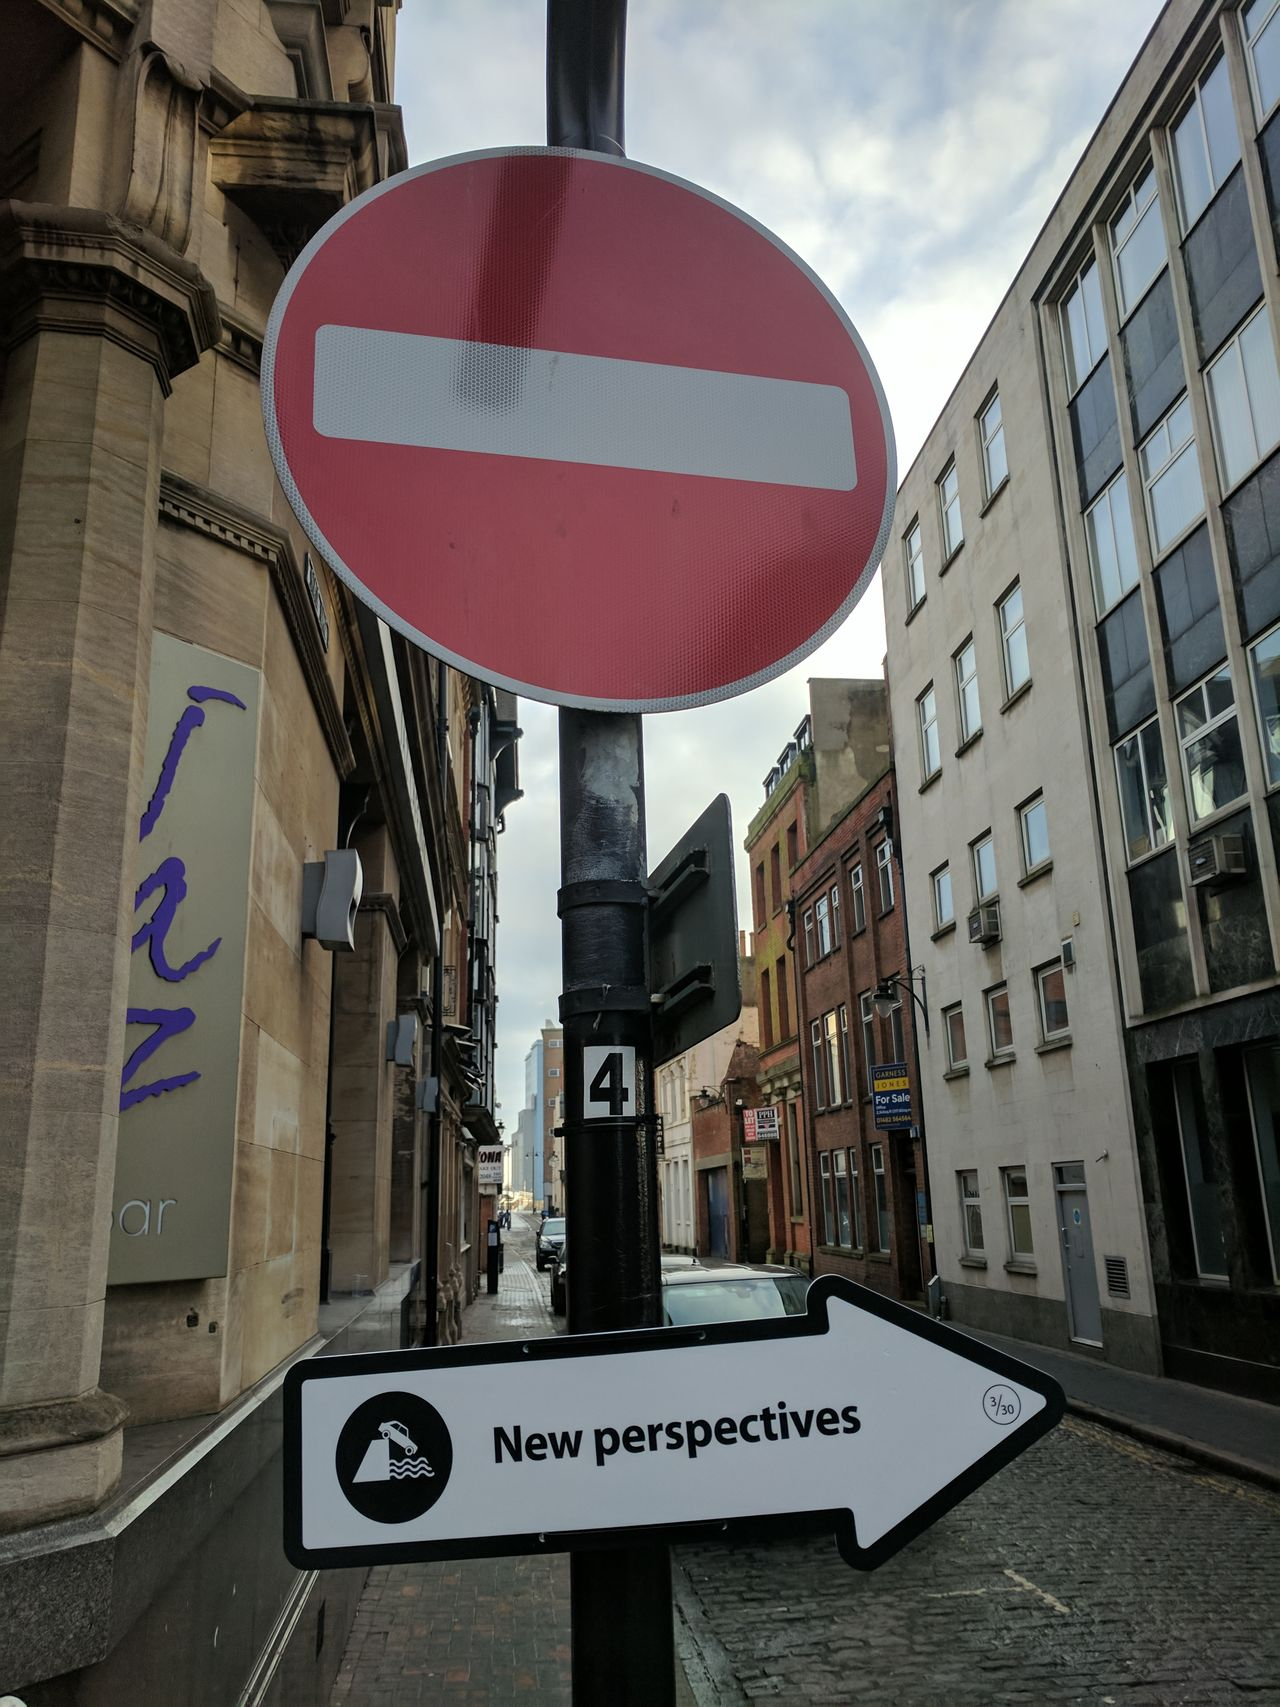 Street sign during Hull 2017 City Of Culture celebrations Architecture Building Exterior Built Structure City Communication Day Hull Hull 2017 Hull City Of Culture 2017 Hull2017 No People Outdoors Road Sign Sky Text